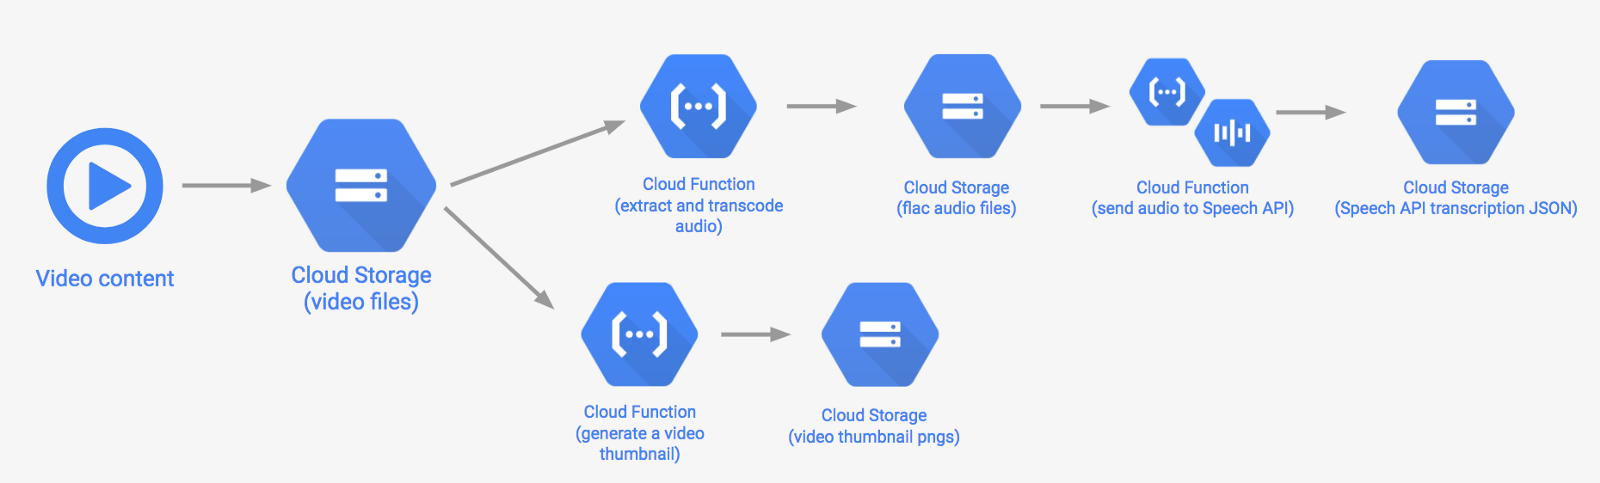 Making audio searchable with Cloud Speech - By